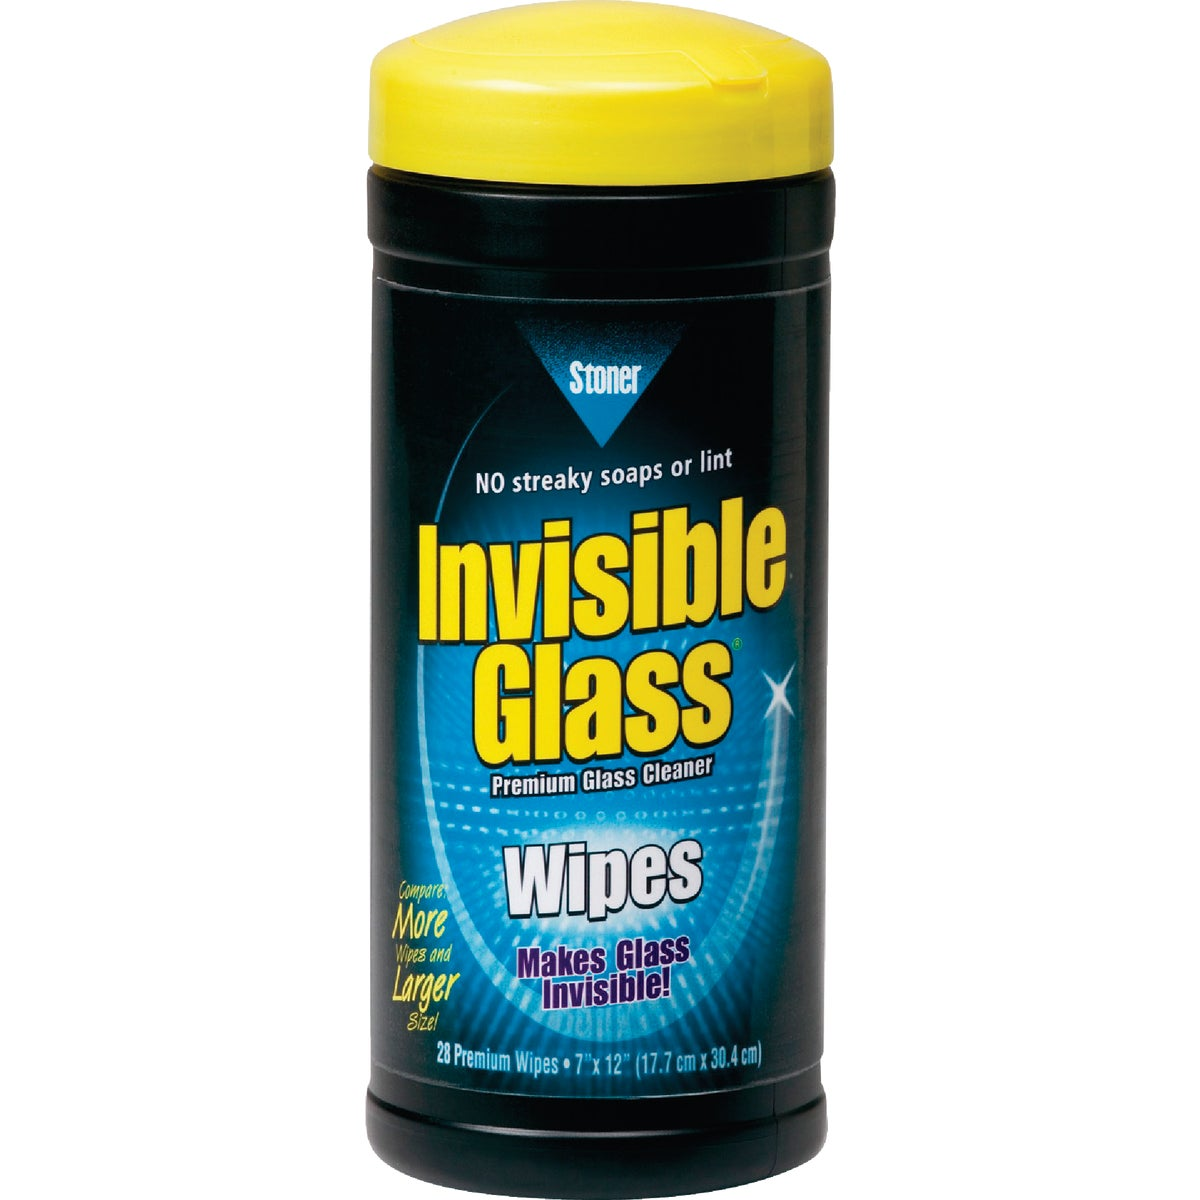 28CT GLASS WIPES